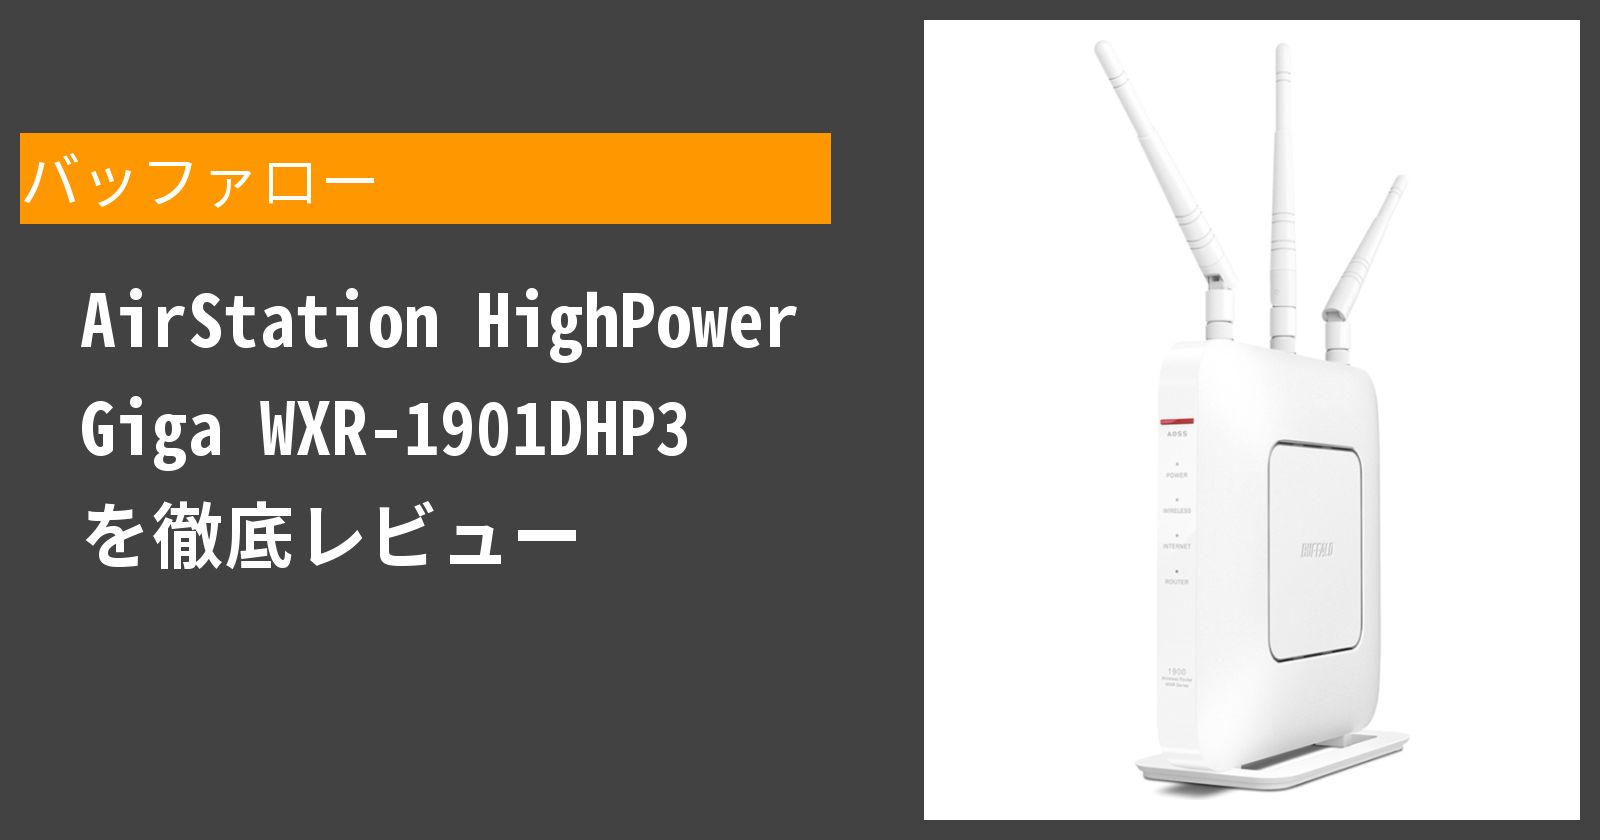 AirStation HighPower Giga WXR-1901DHP3を徹底評価